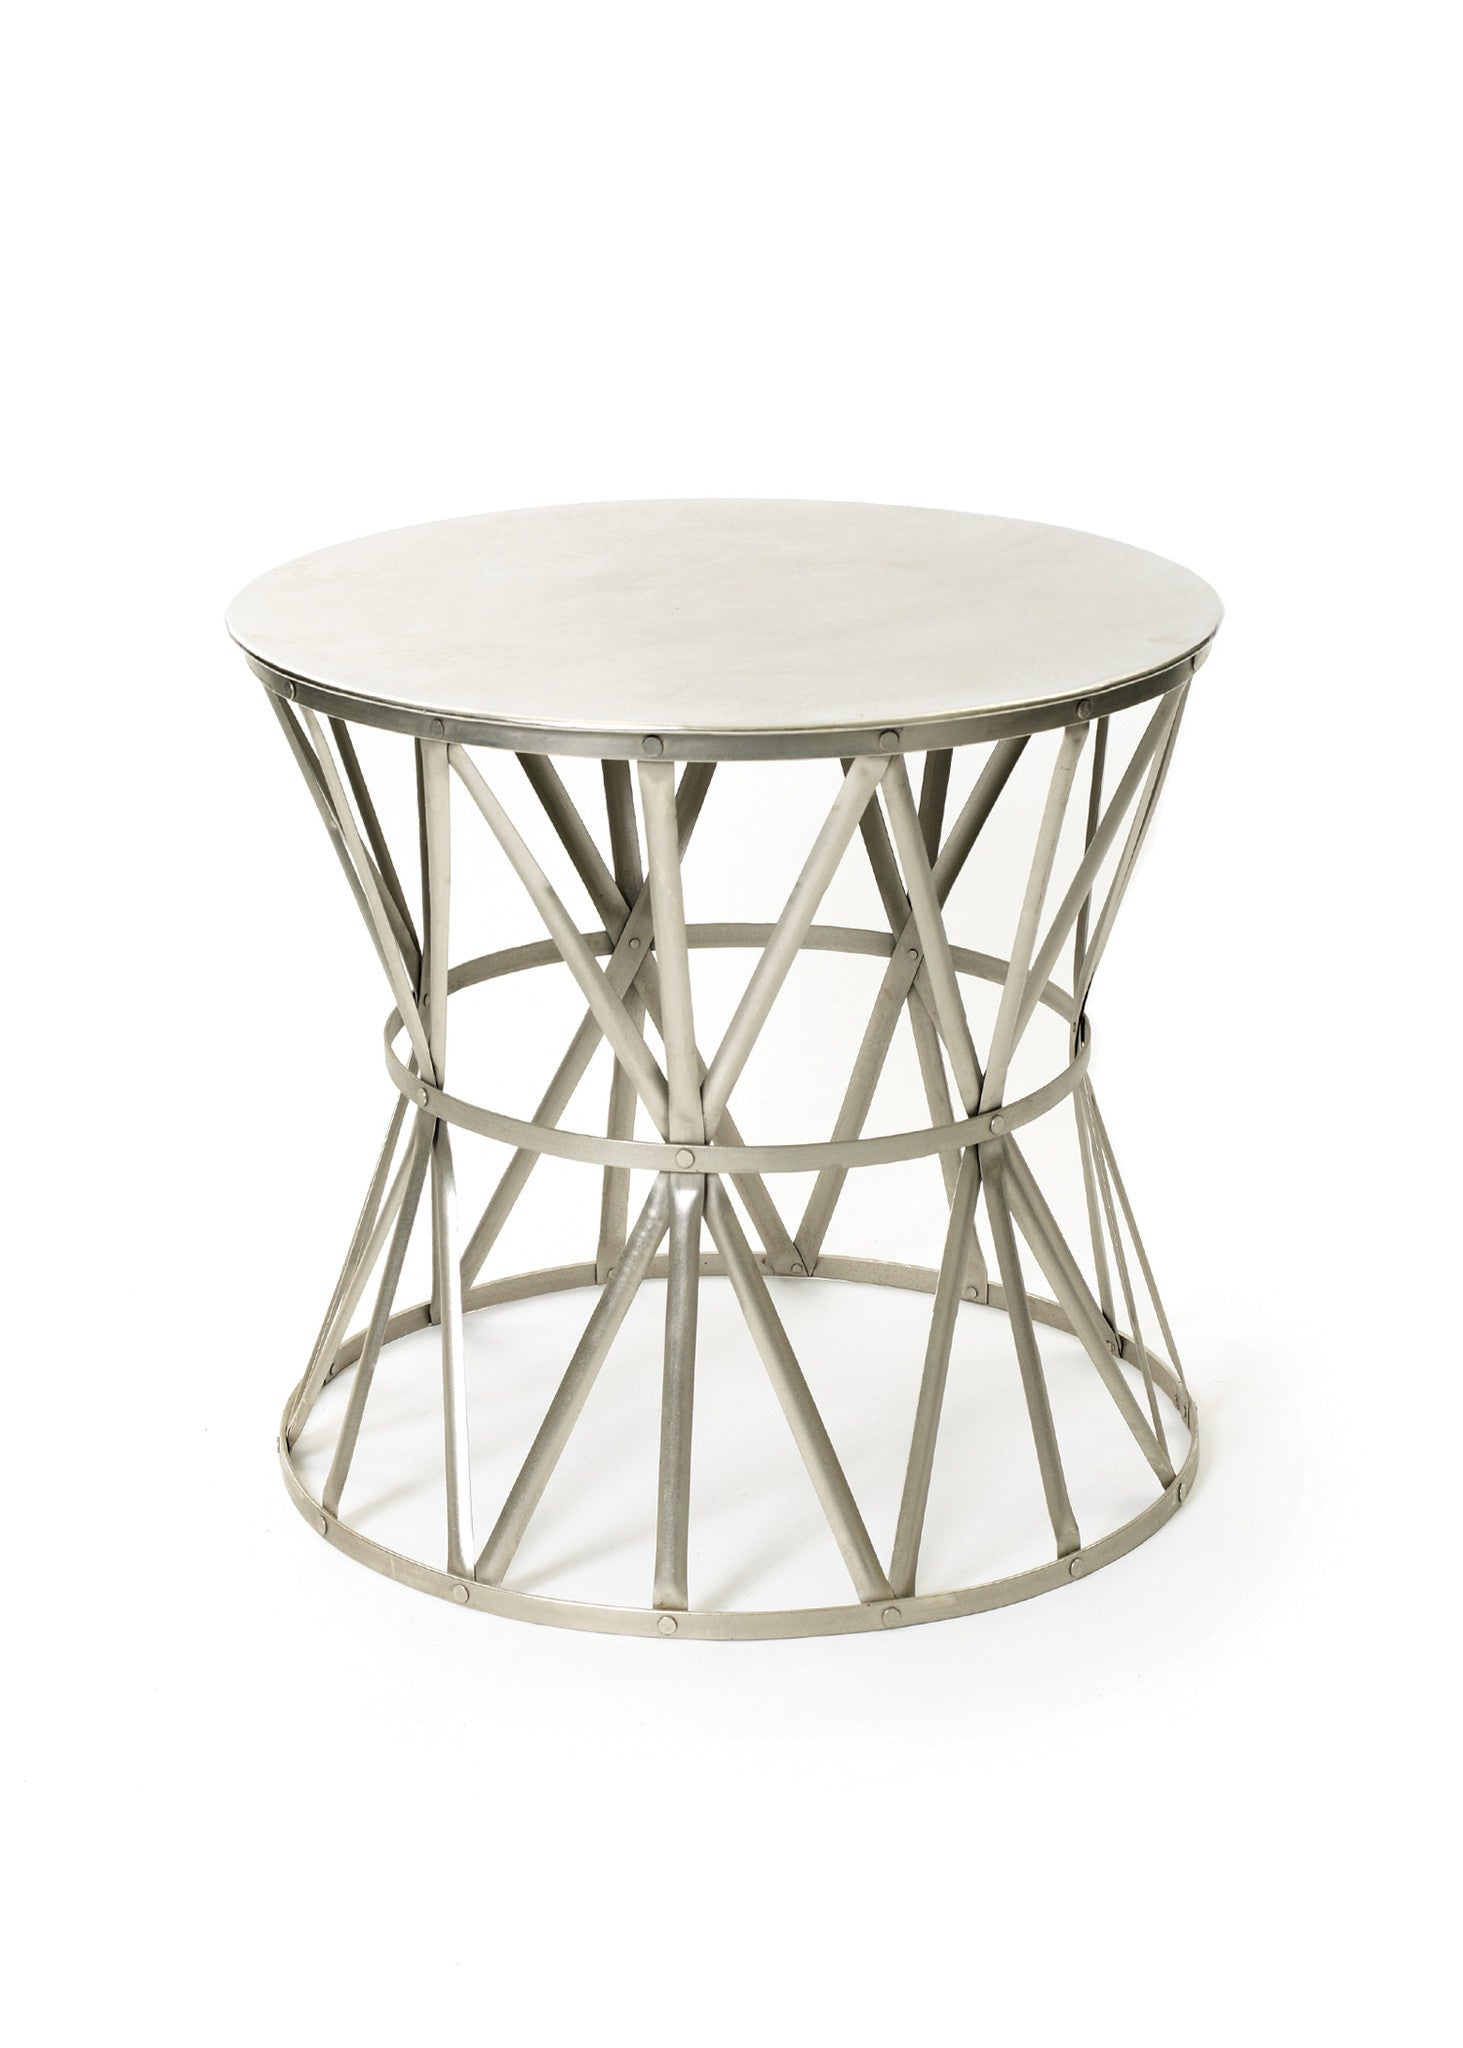 Amazing Angle Round Side Table In Polished Nickel Steel Side Tables Alan Decor